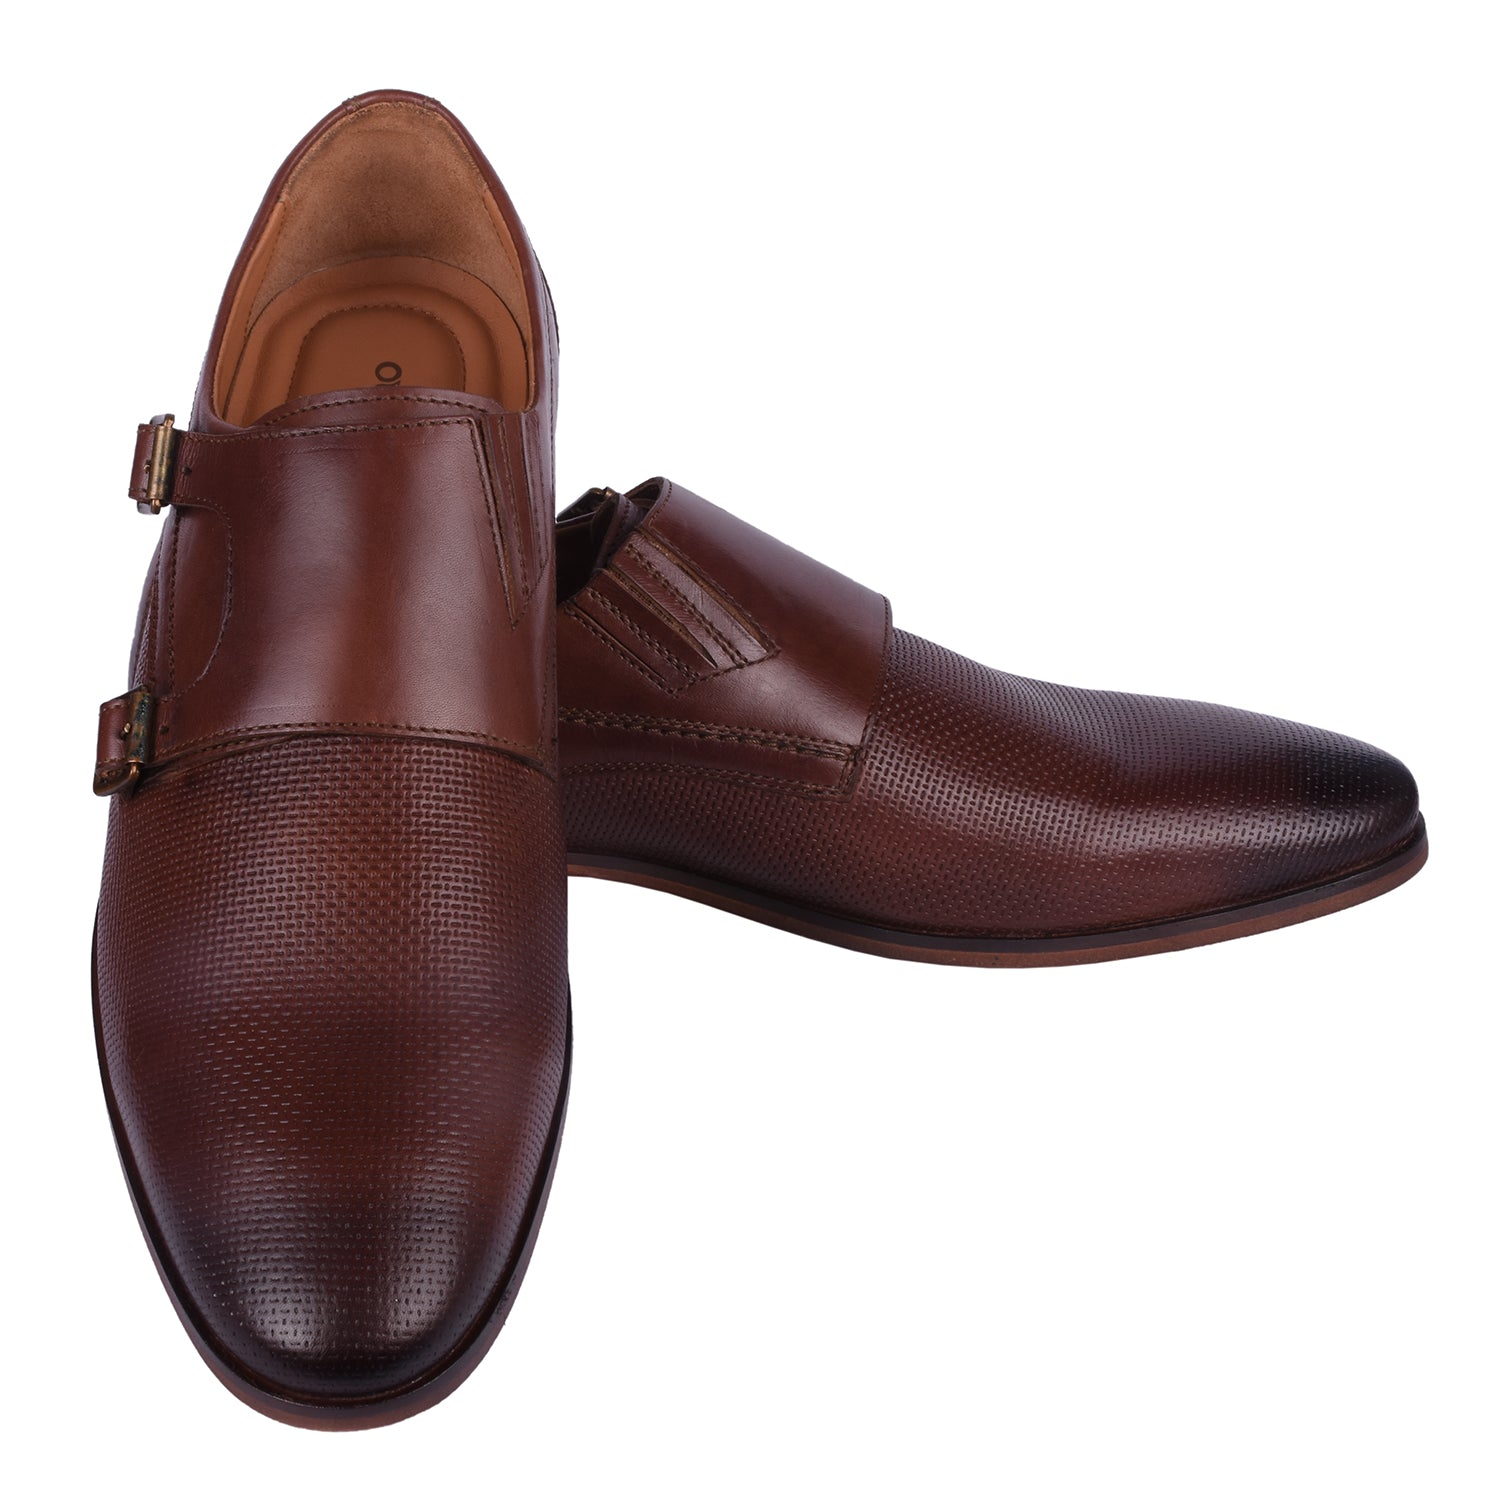 Uptown Girl, Brown Monk Shoe